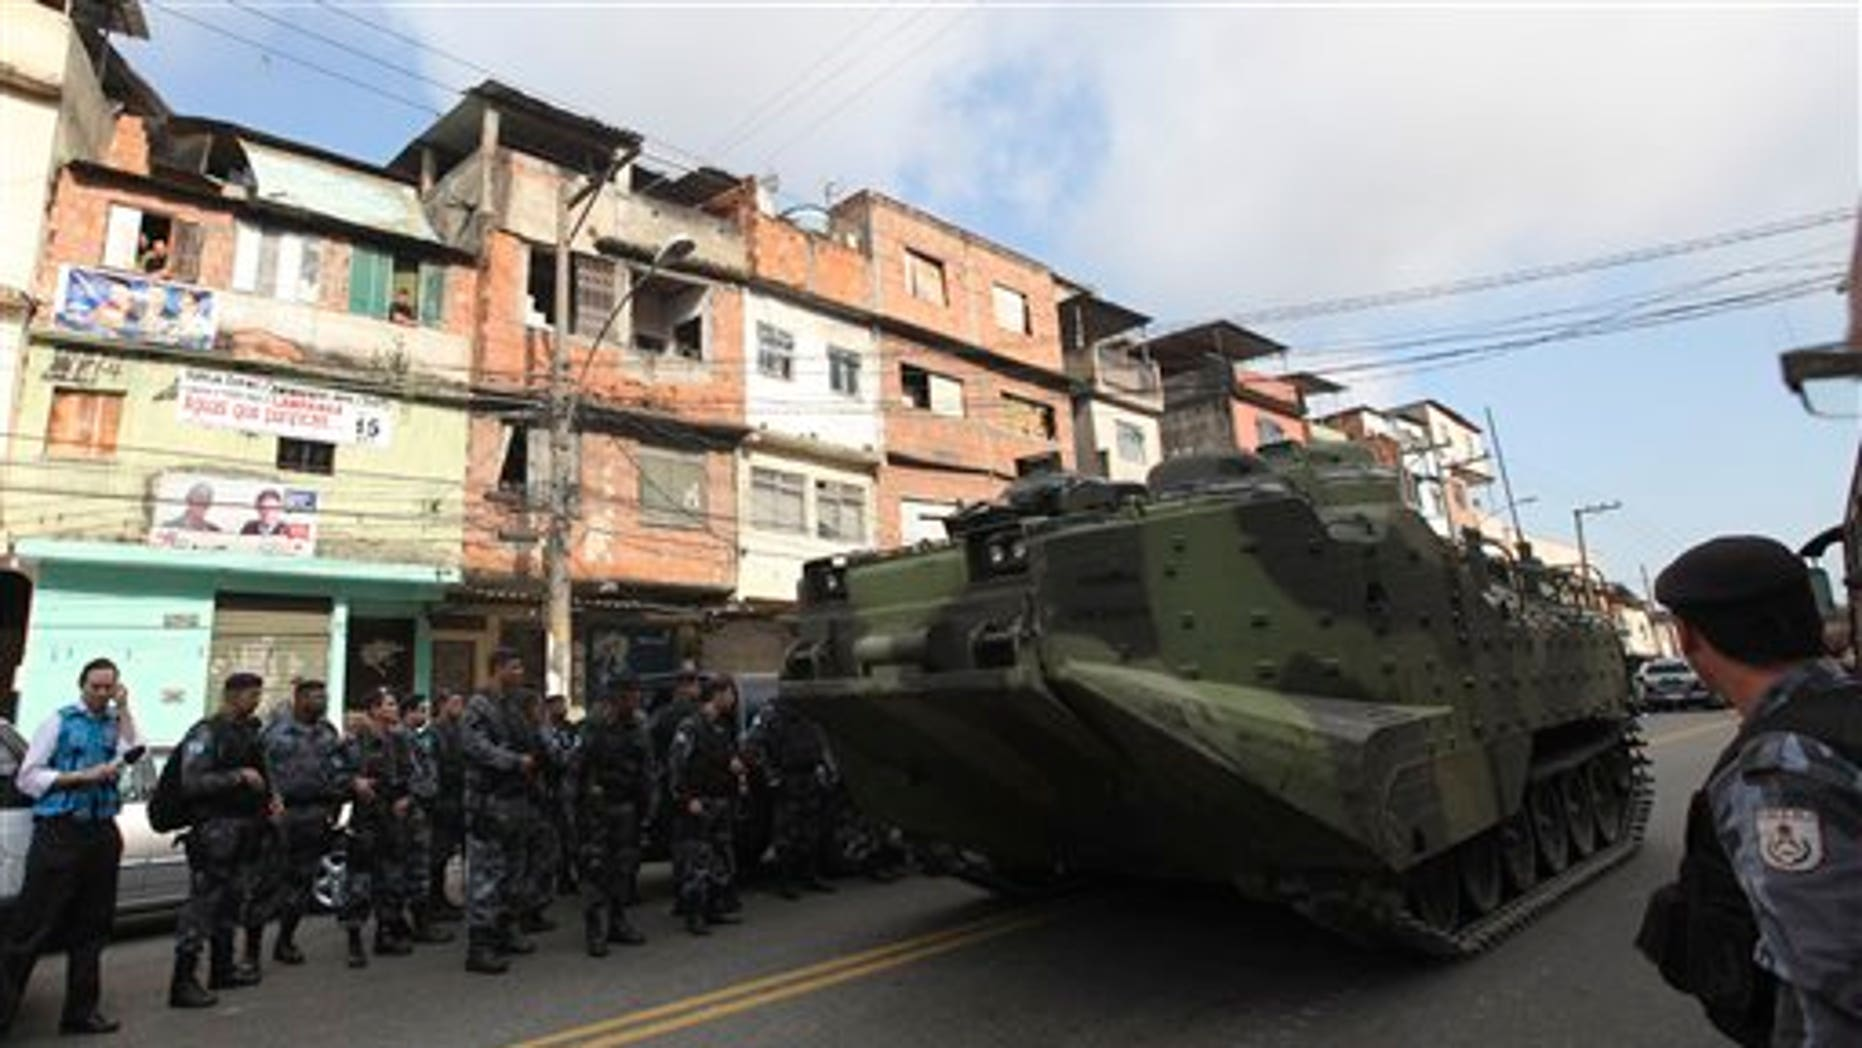 Soldiers stand next to an armored vehicle during a police operation against drug traffickers at the Complexo do Alemao slum in Rio de Janeiro, Brazil, Sunday, Nov. 28, 2010. Rio police backed by helicopters and armored vehicles, started invading a shantytown complex long held by traffickers on Sunday, slowly moving their way through small alleys amid heavy gunfire. (AP Photo/Andre Penner)